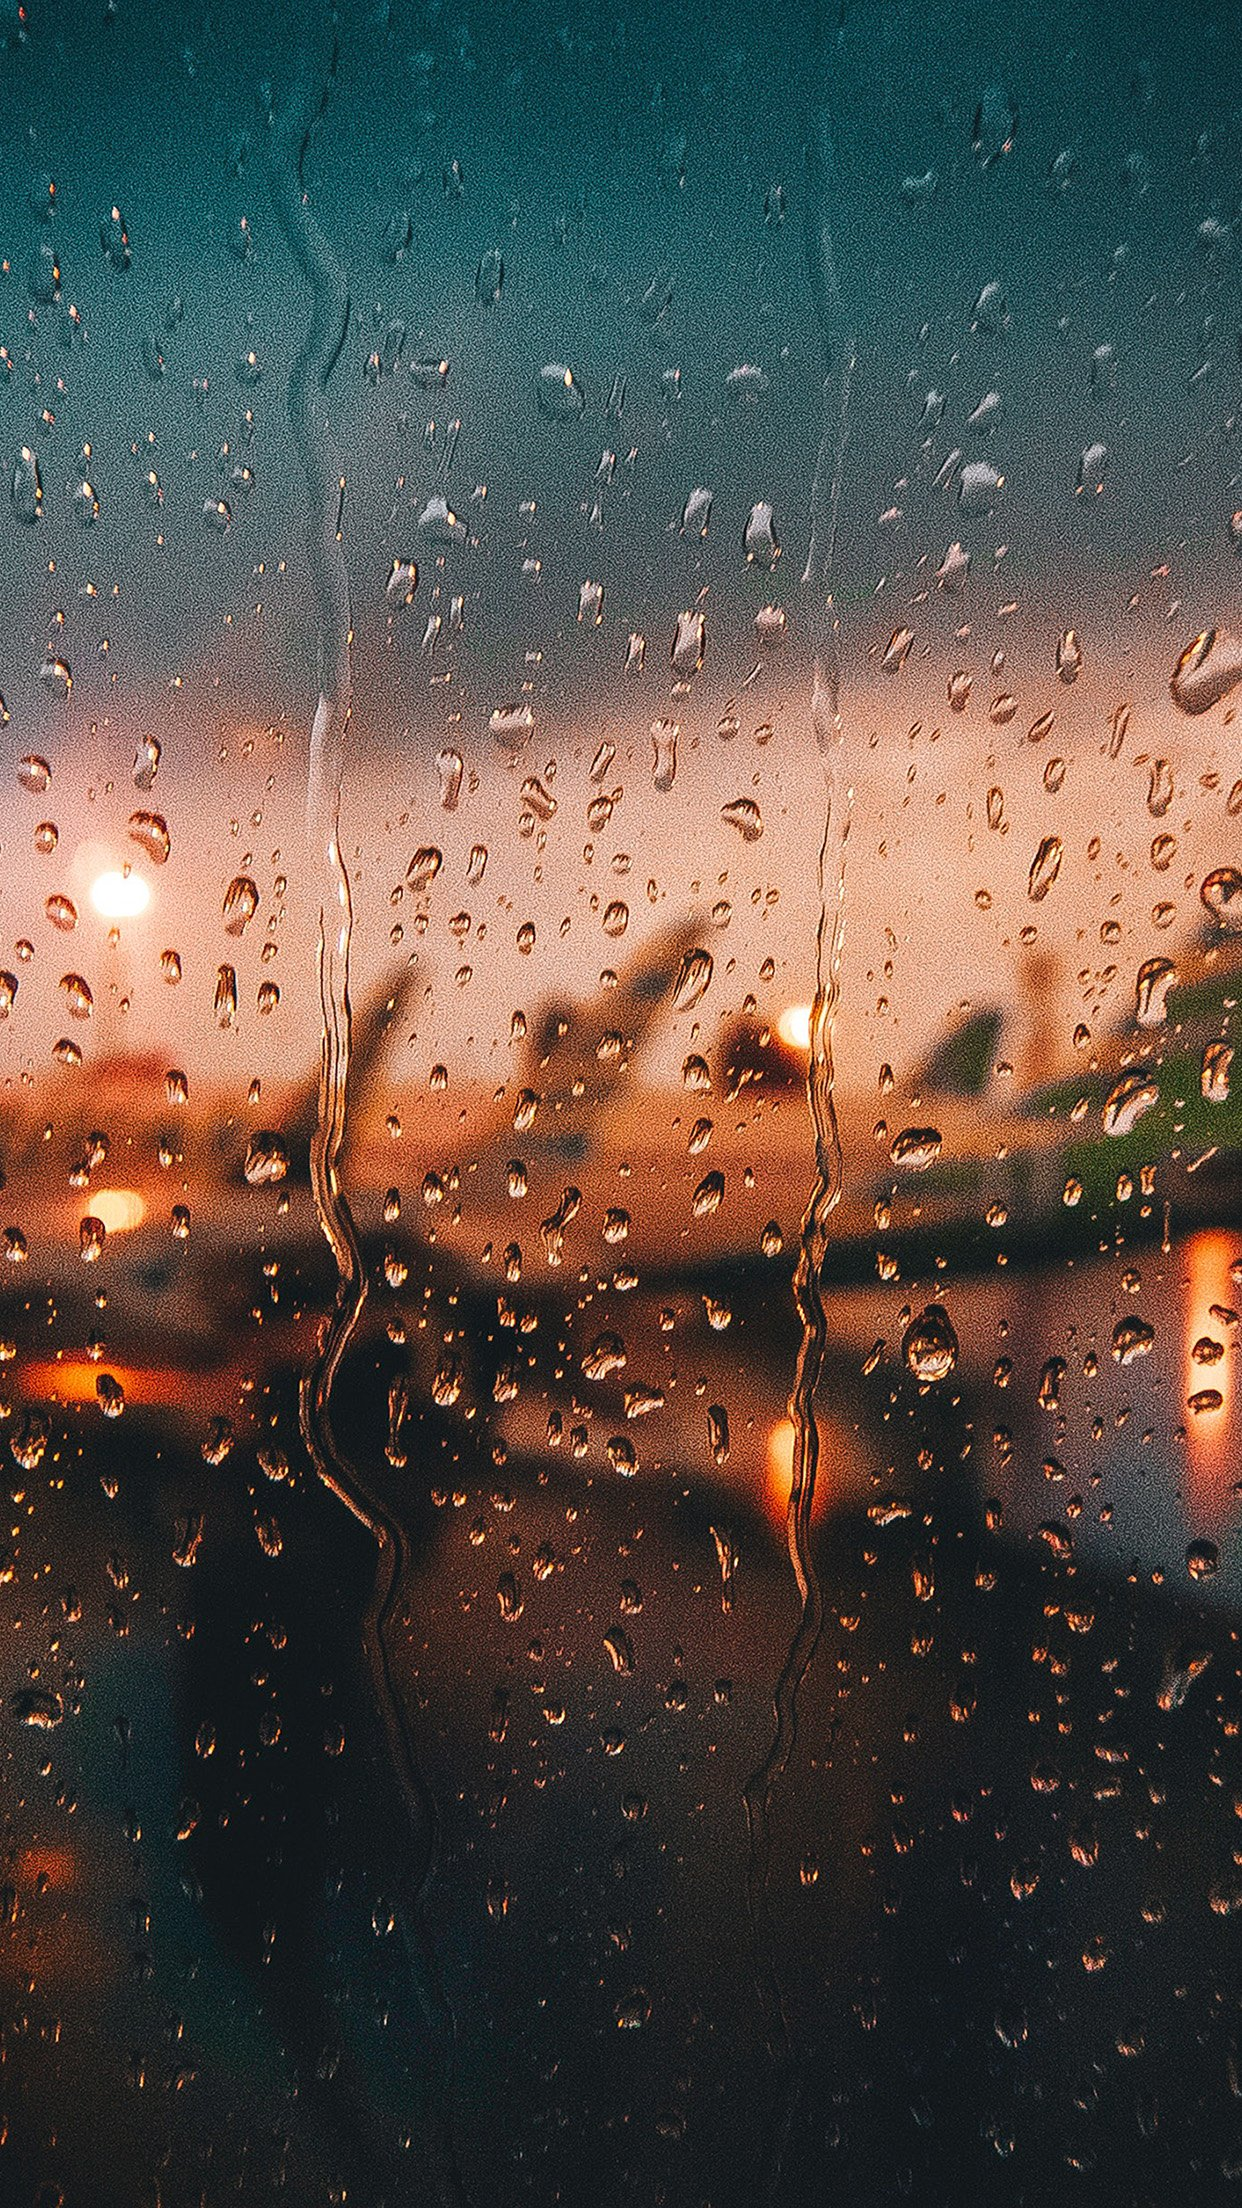 Aesthetic Rain   1242x2208 Wallpaper   teahubio 1242x2208